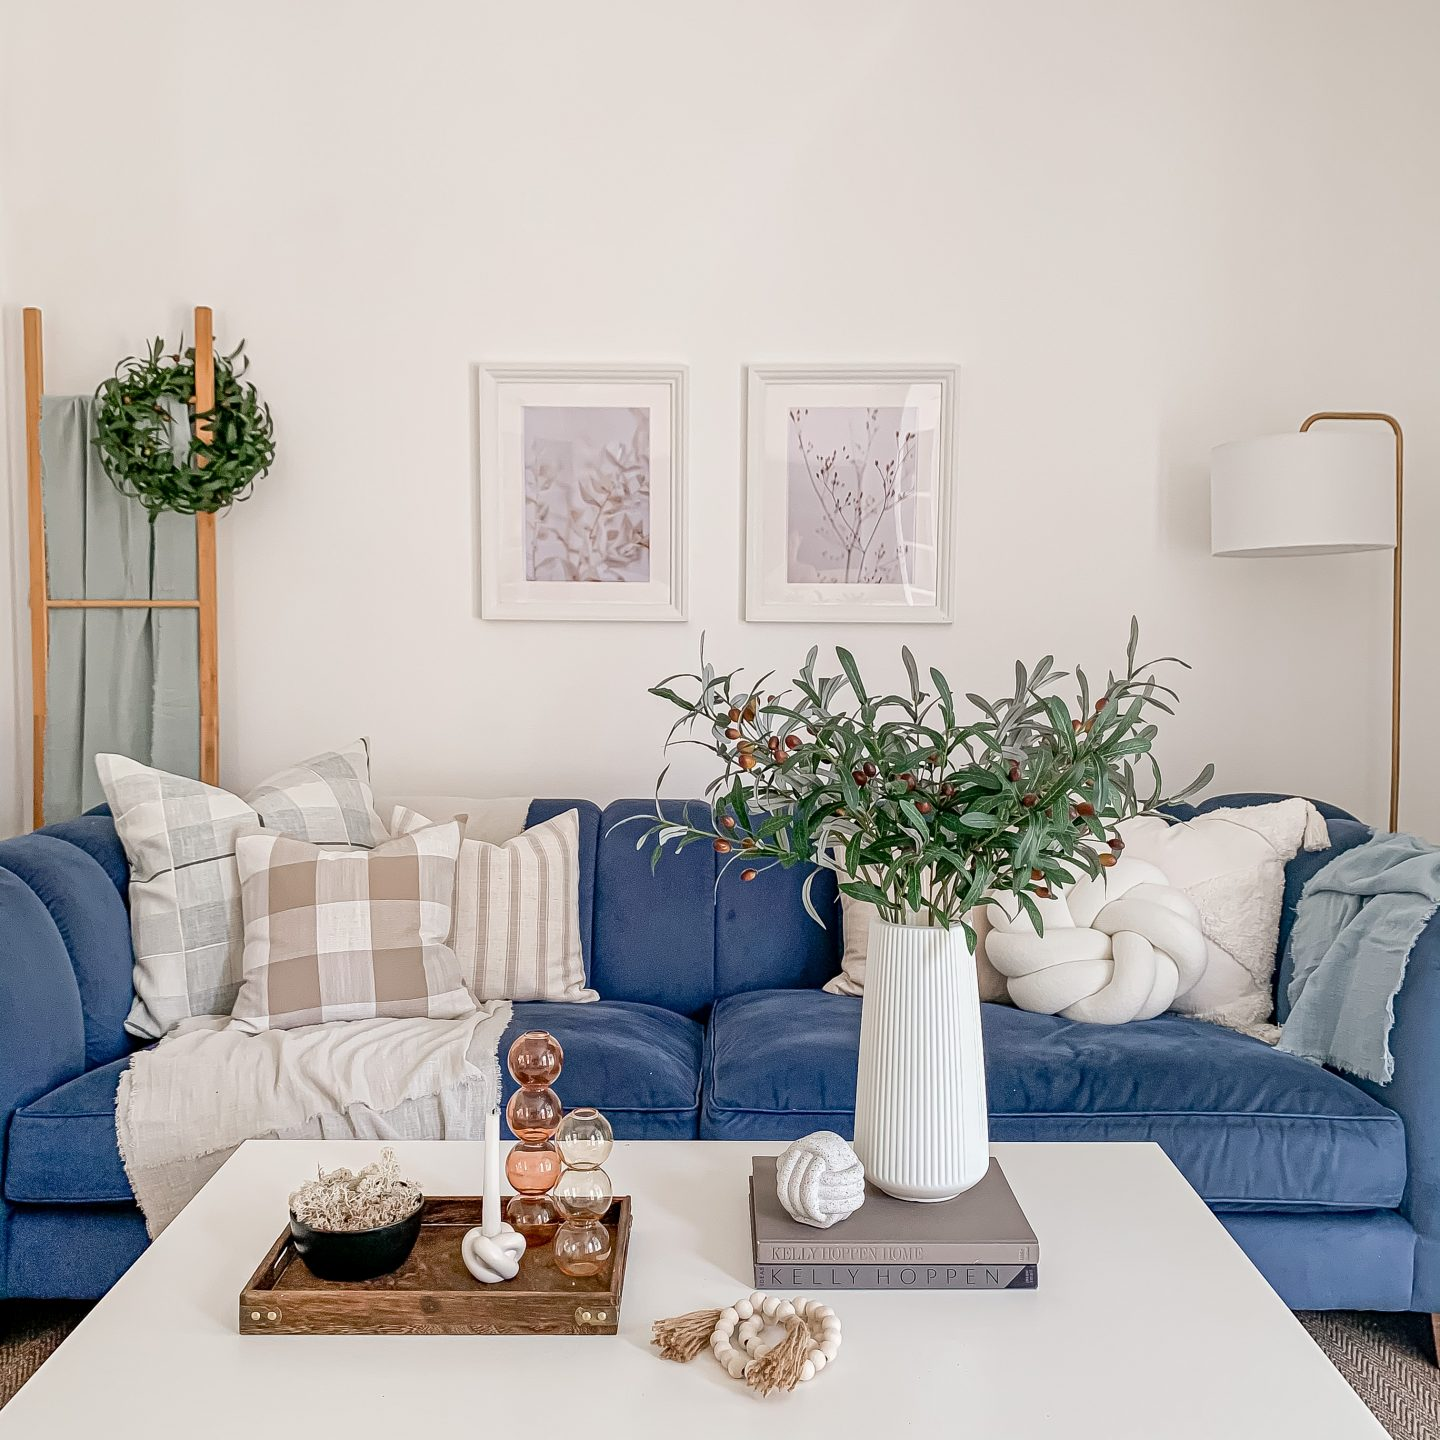 5 TOP TIPS FOR ADDING A POP OF PERSONALITY TO YOUR HOME DECOR